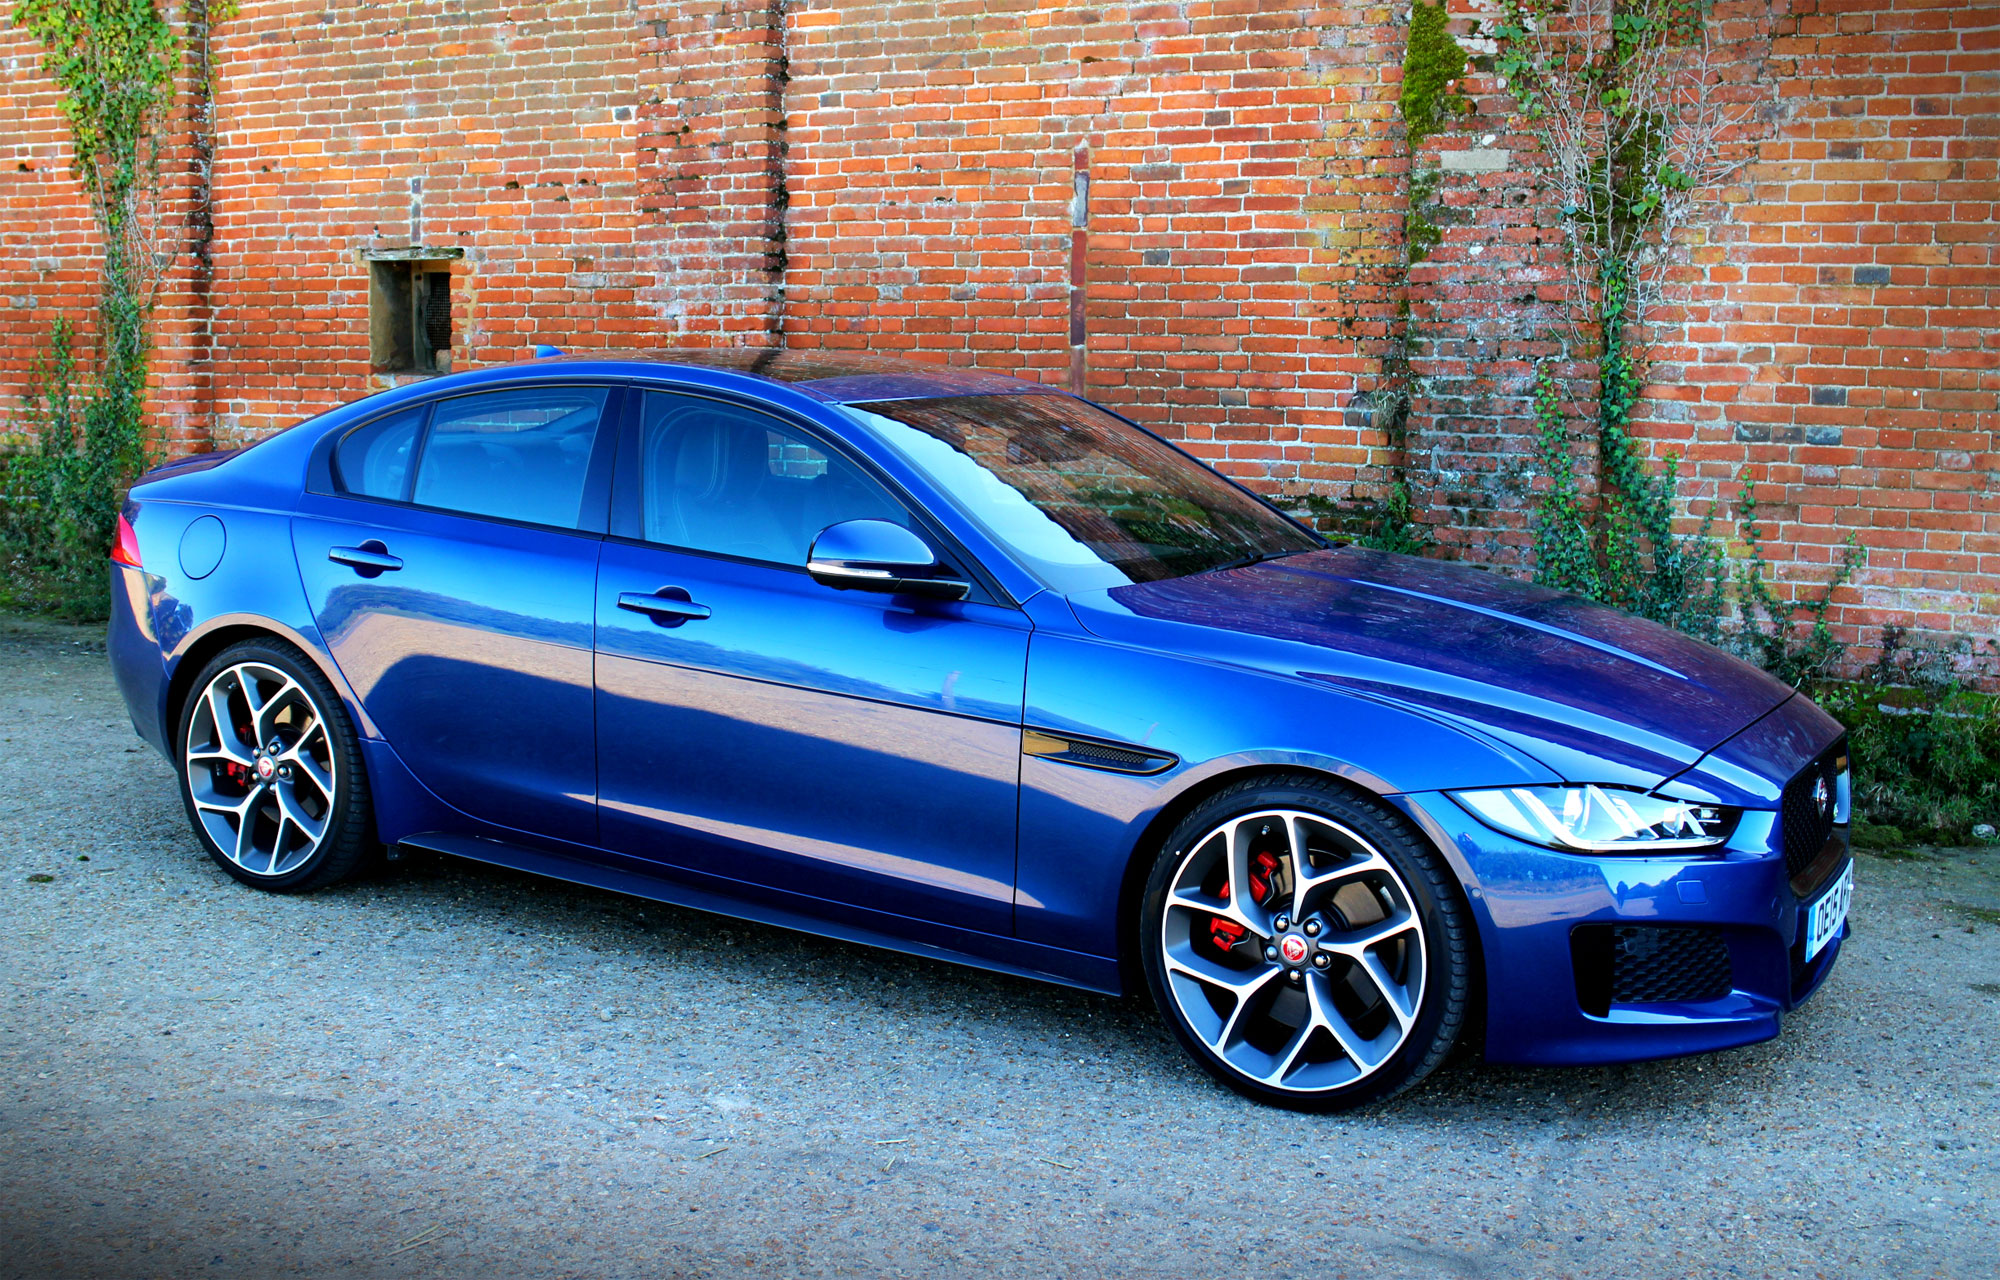 The Jaguar XE S is stylish, comfortable and effortless